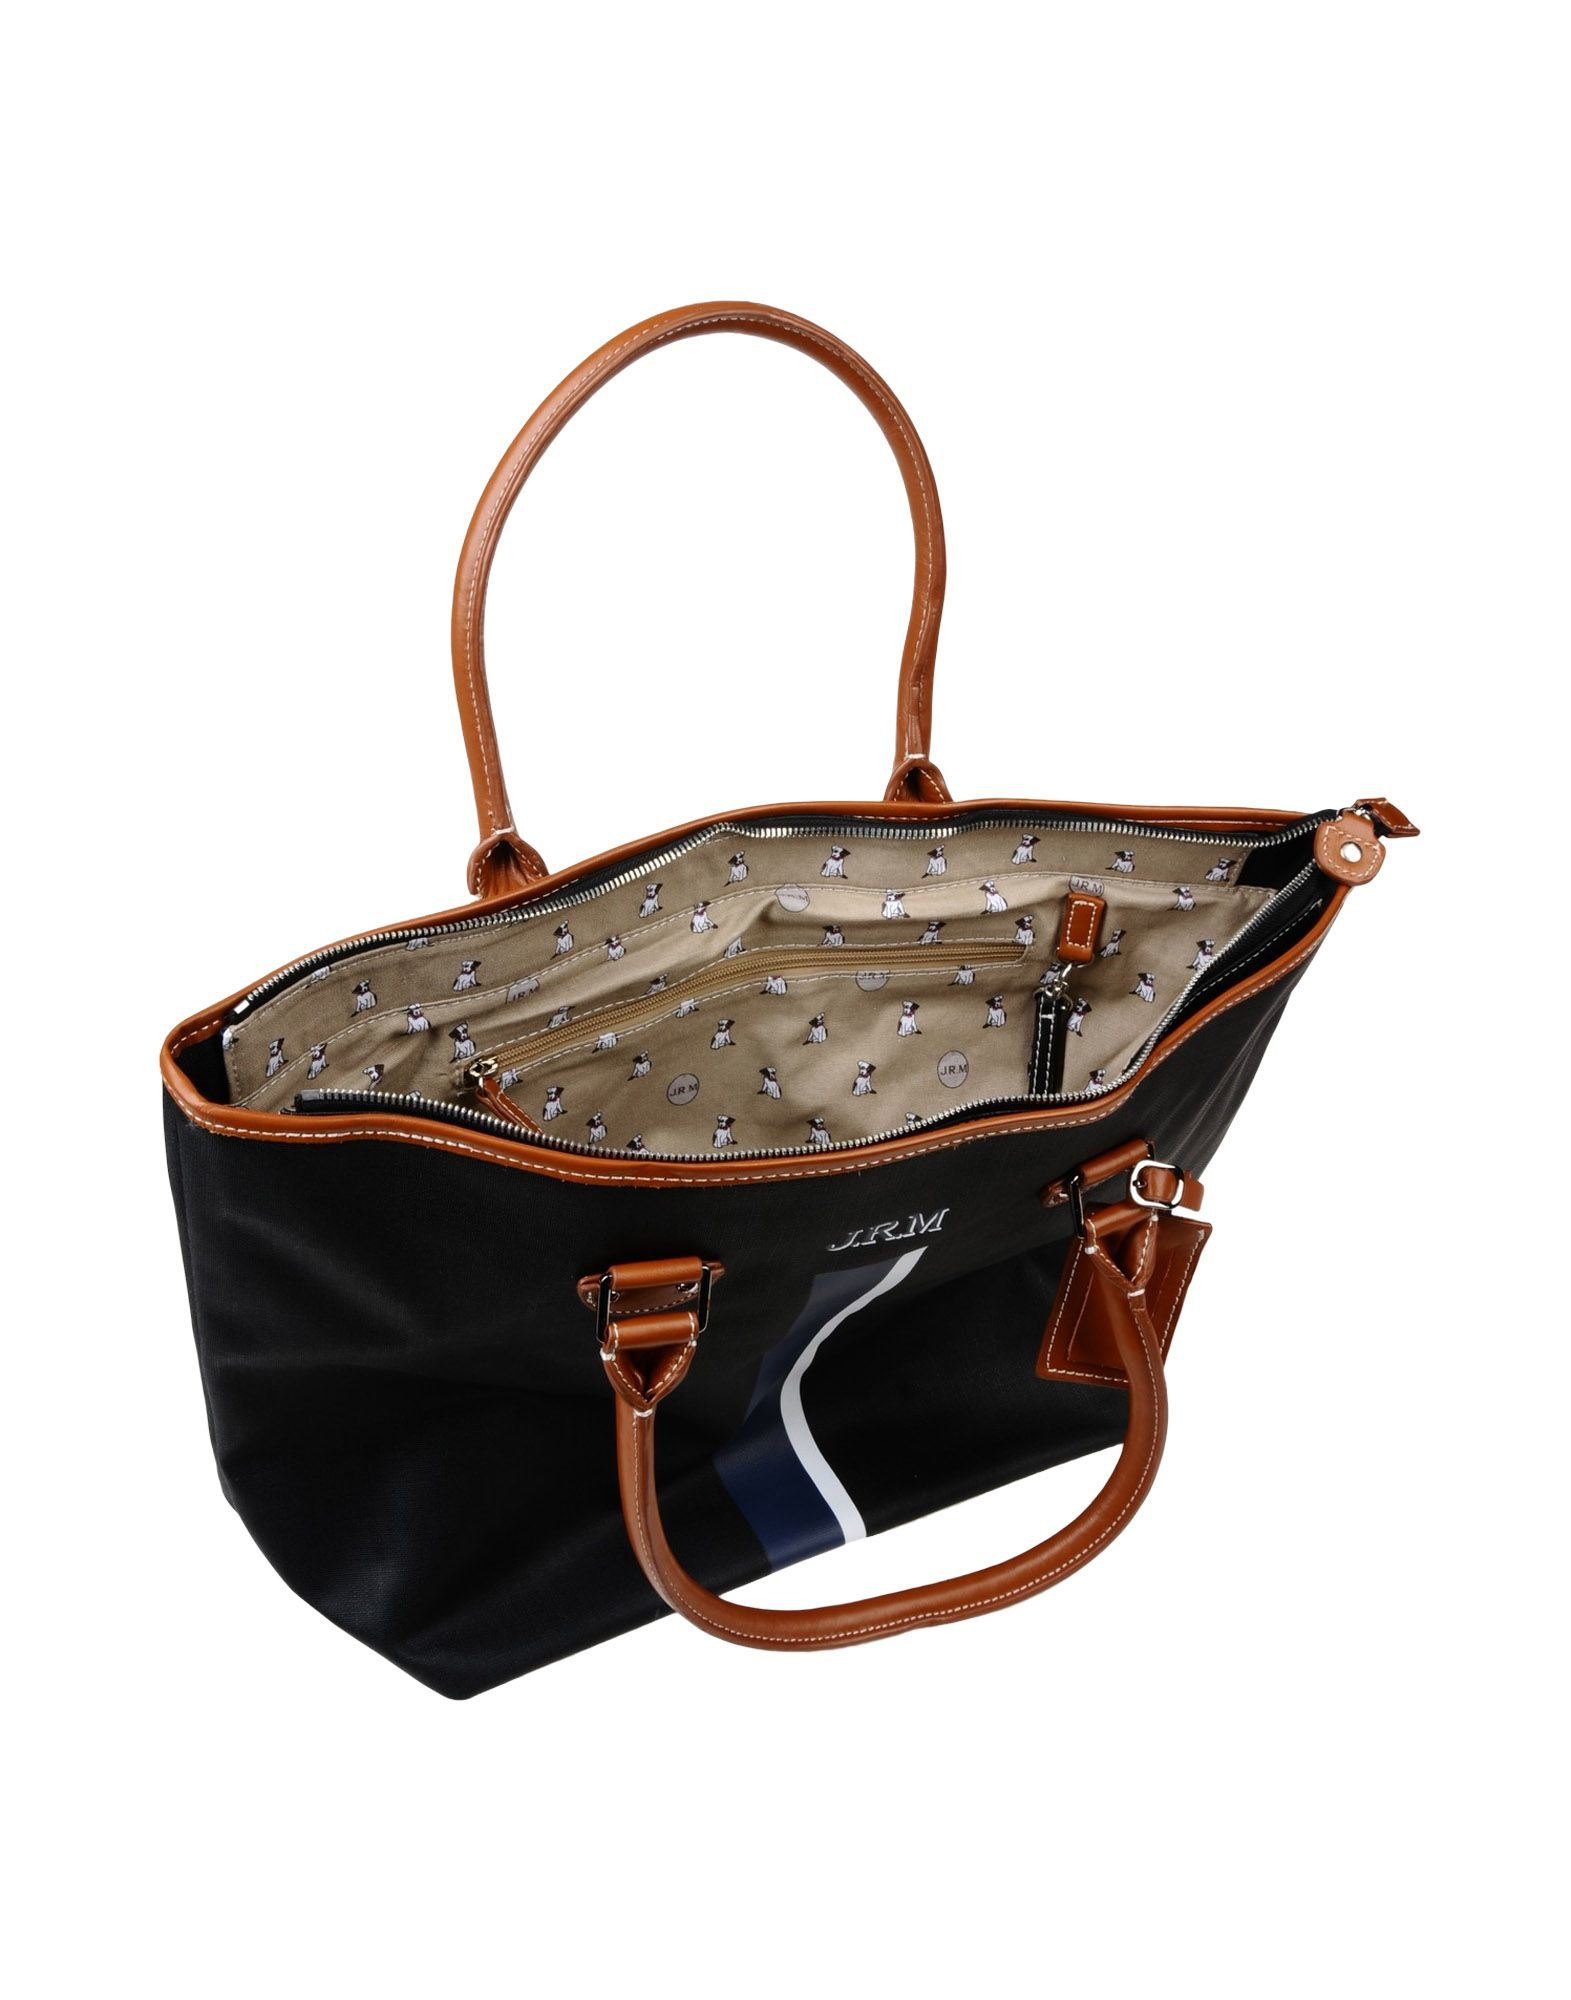 jack russell malletier handbag in black lyst. Black Bedroom Furniture Sets. Home Design Ideas